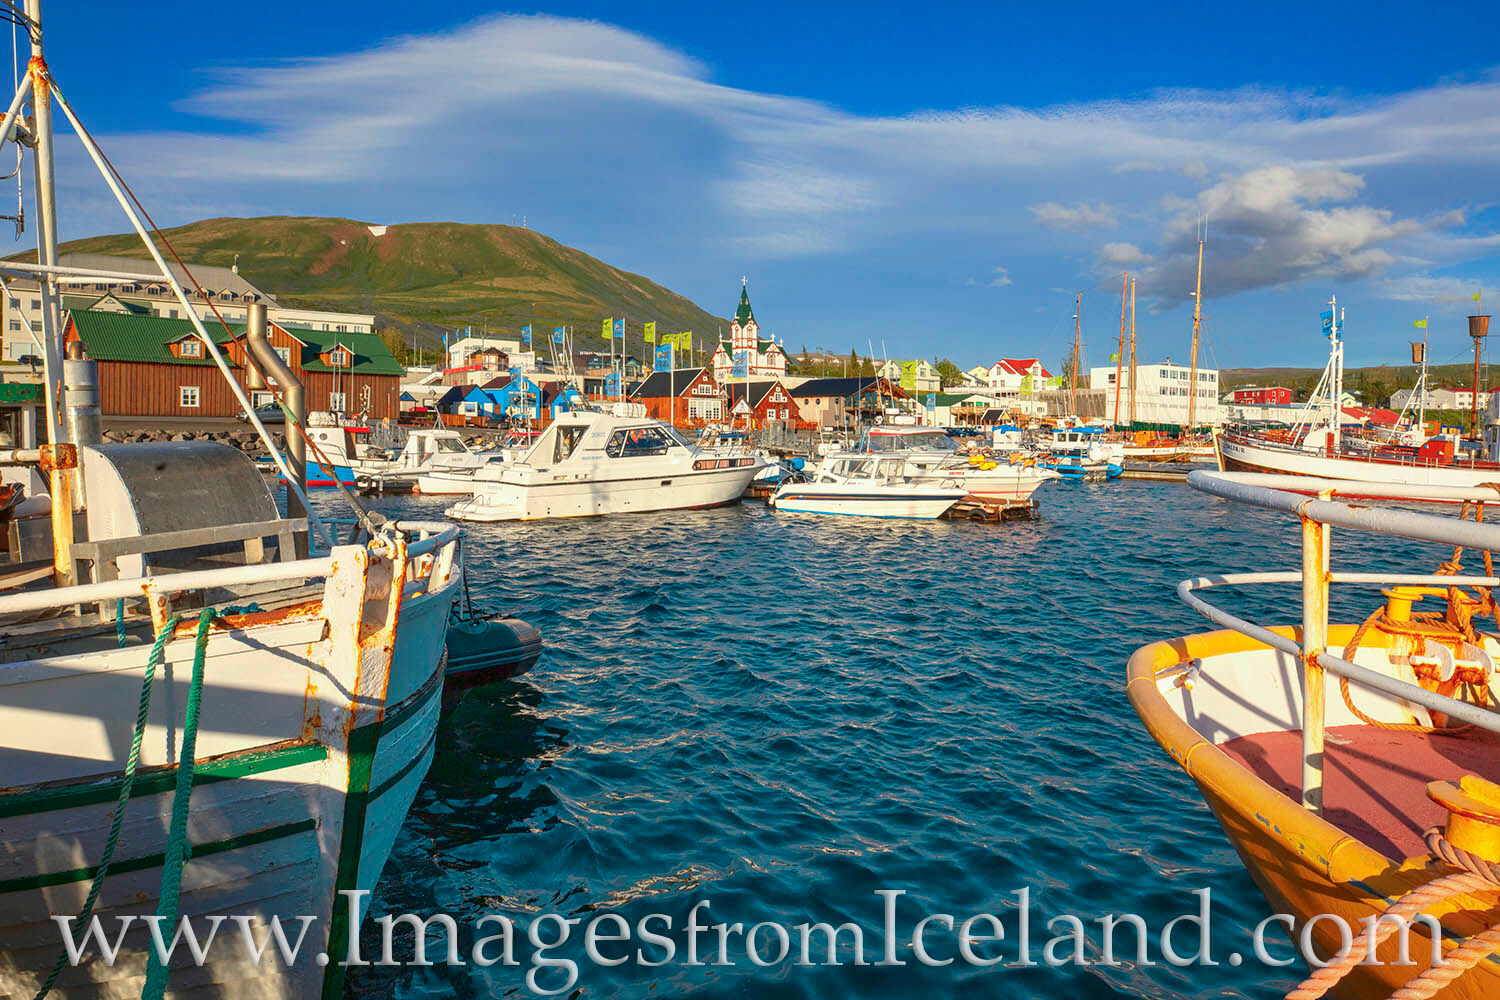 Along Skjálfandi bay in north Iceland, the port town of Húsavík has just over 2,000 inhabitants. The main feature of the town...